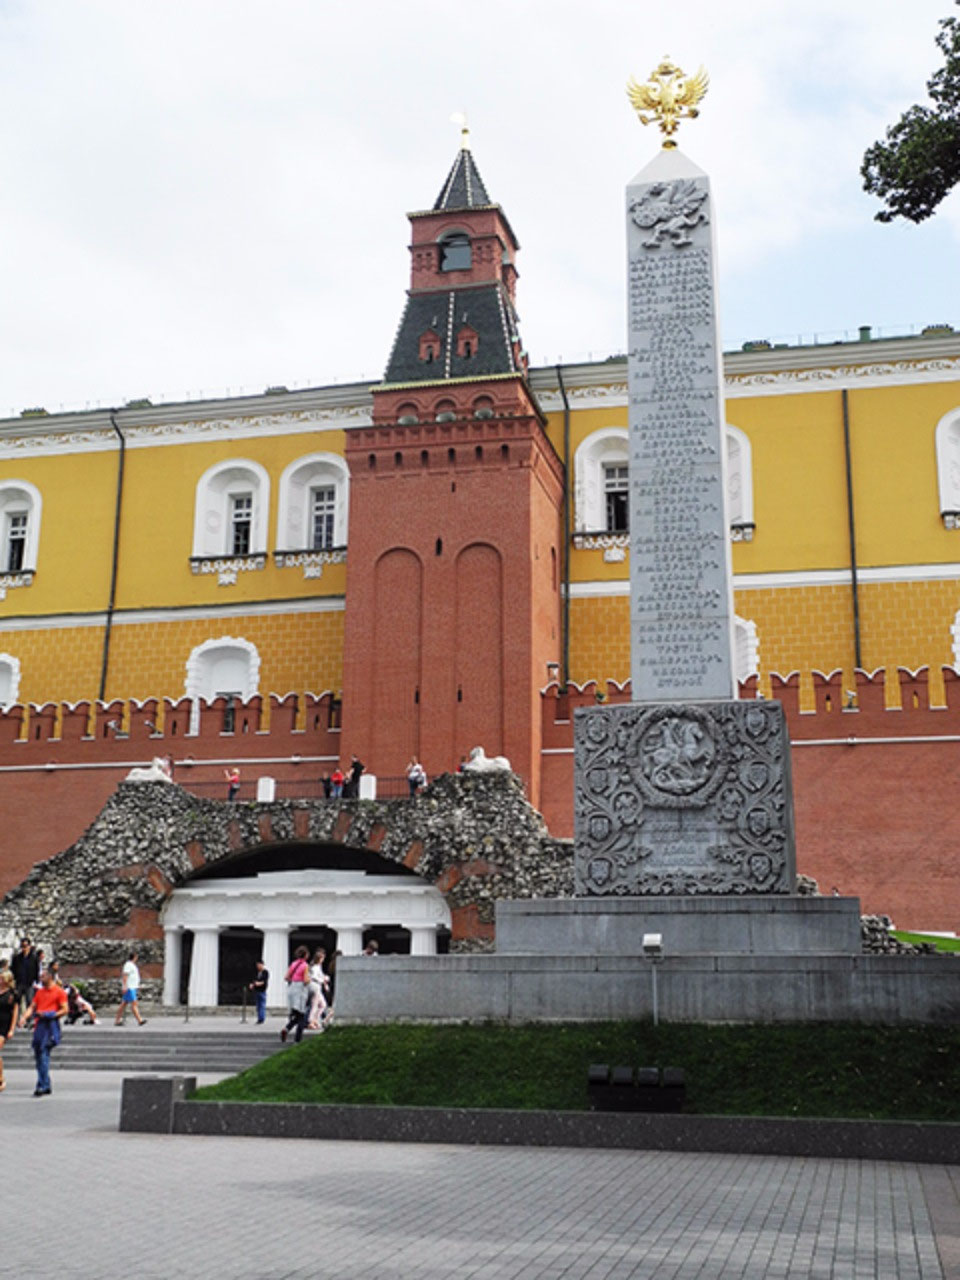 Romanov Obelisk, Arsenal Tower, and the Ruins